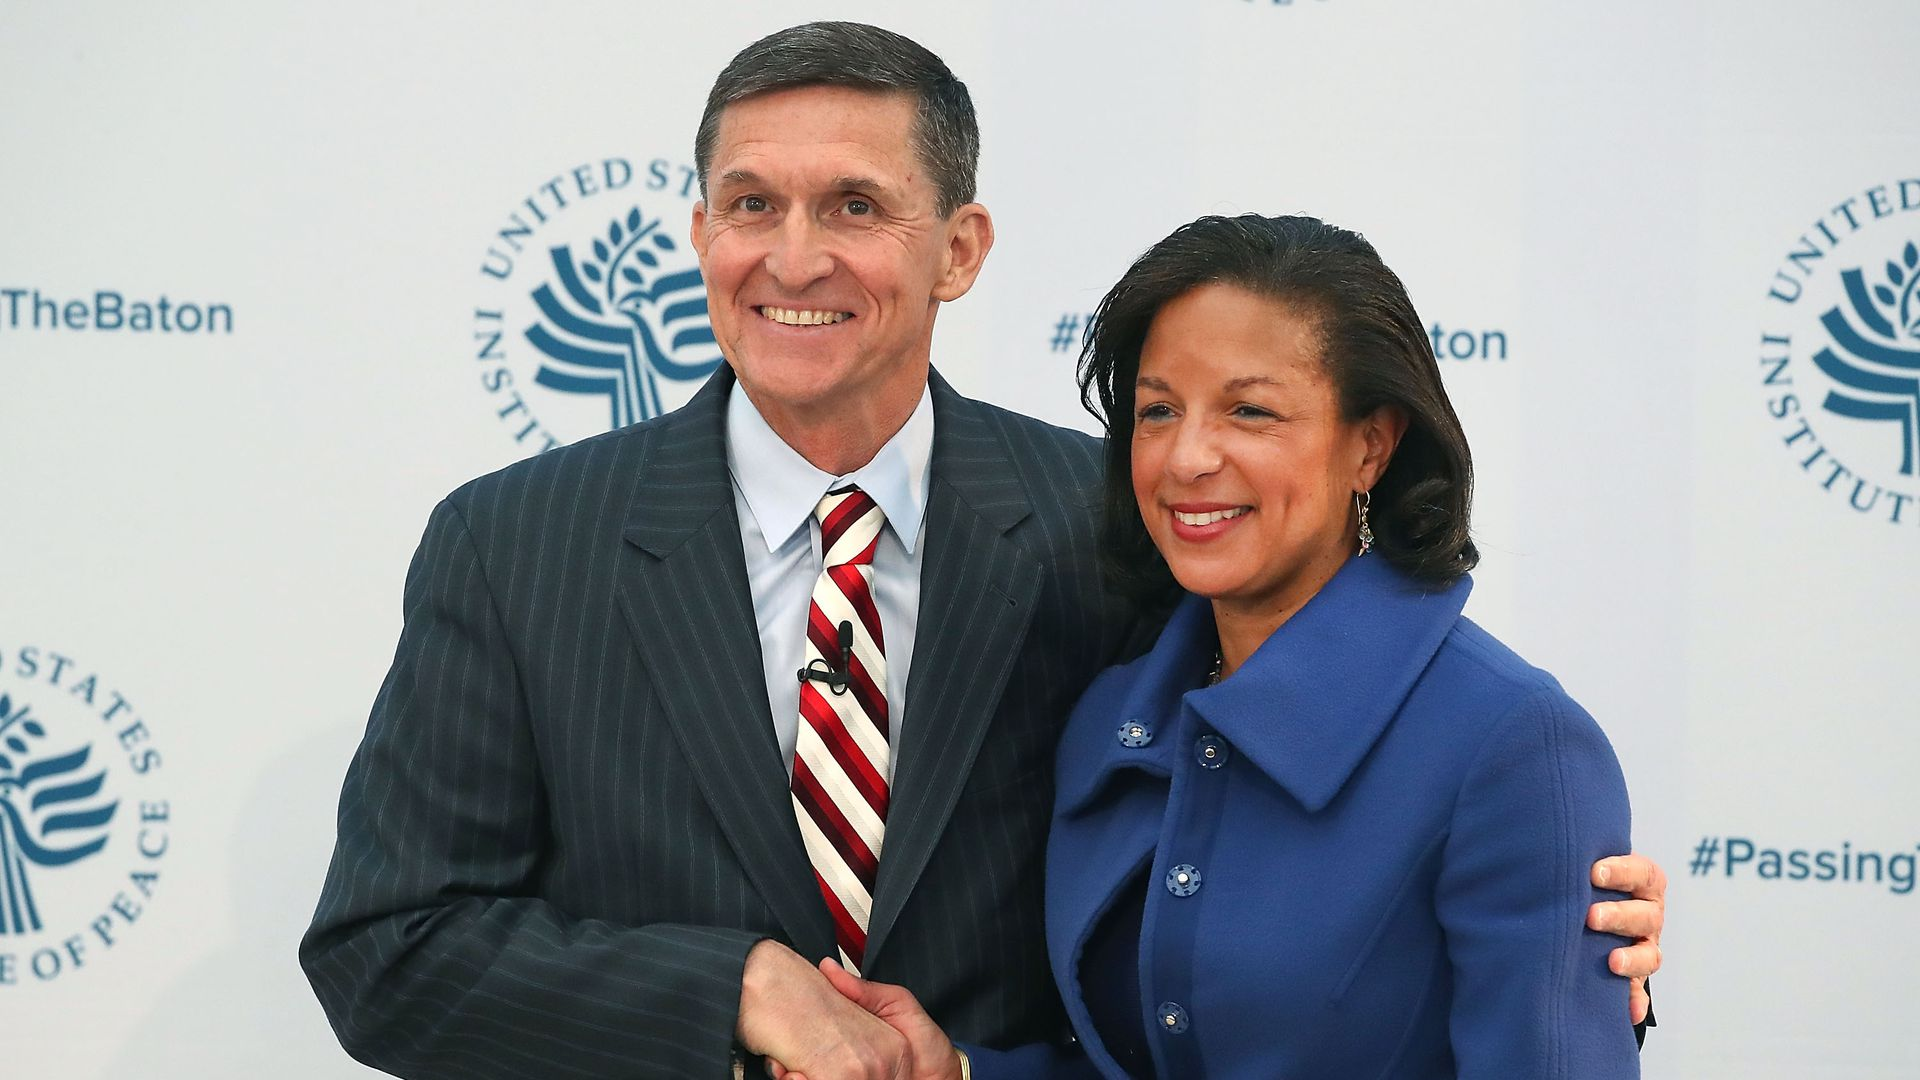 Former National Security Advisor Susan Rice poses with her replacement, Michael Flynn